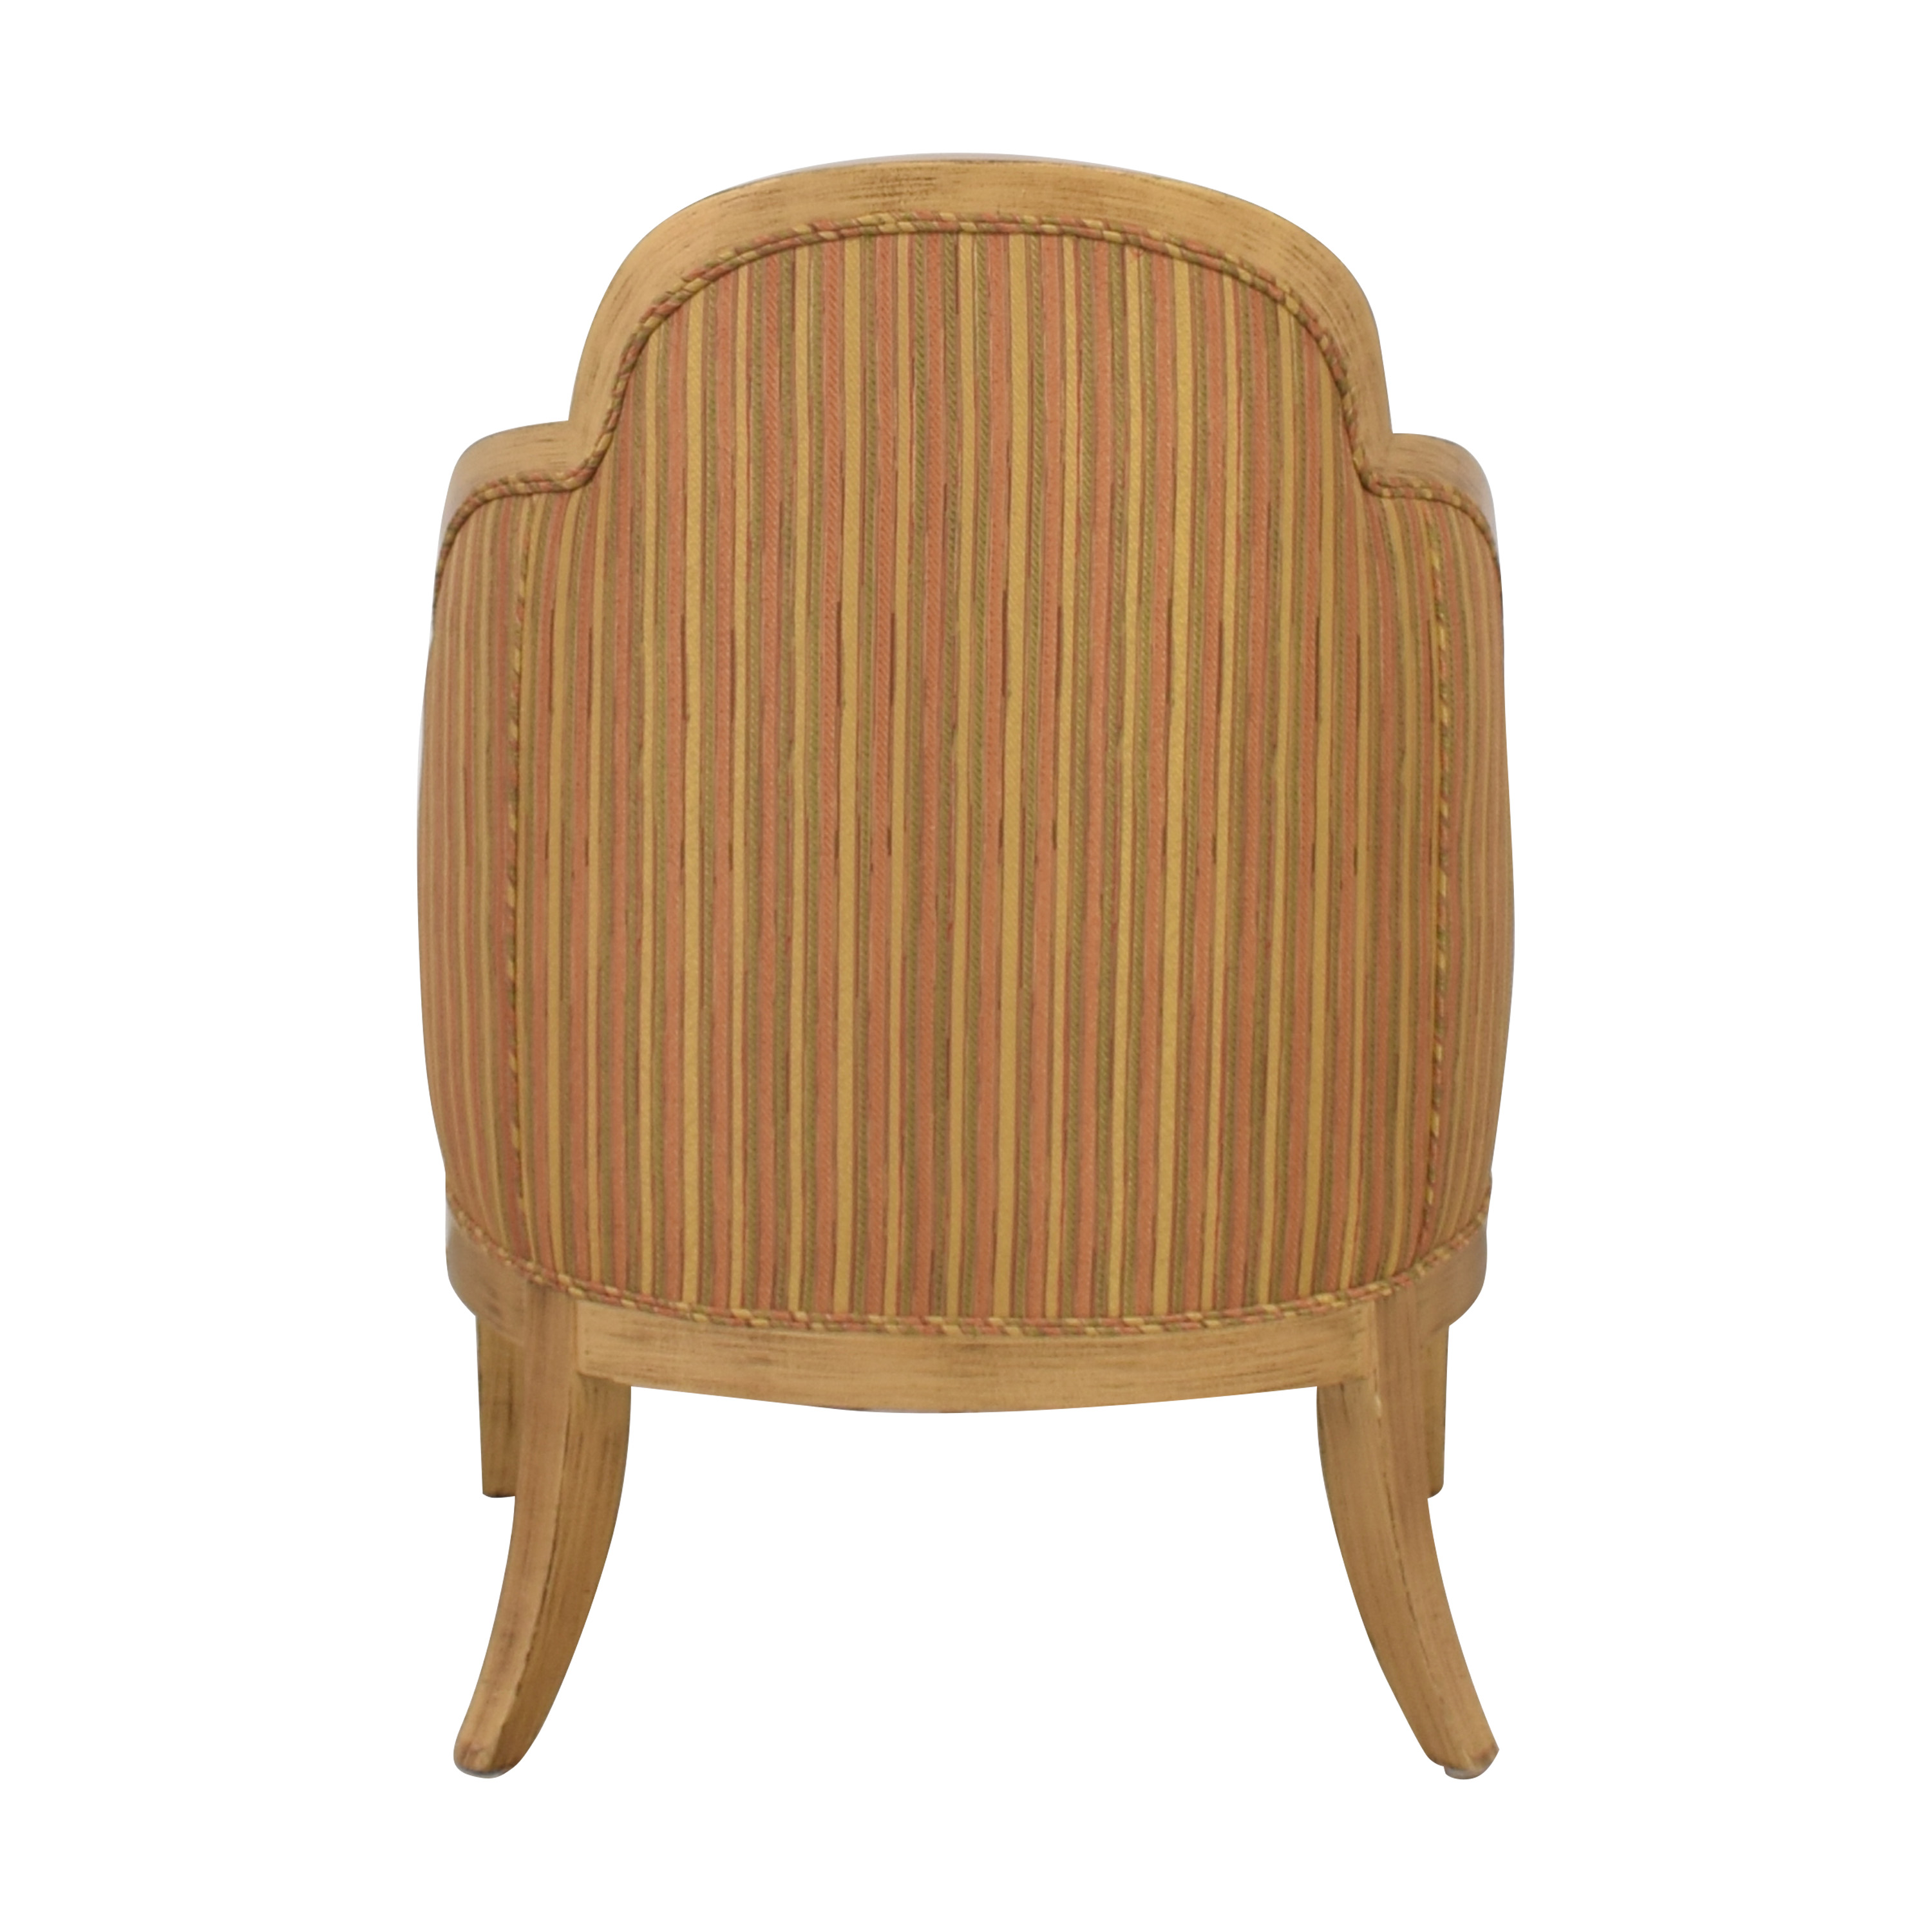 Sigla Accent Chair / Chairs